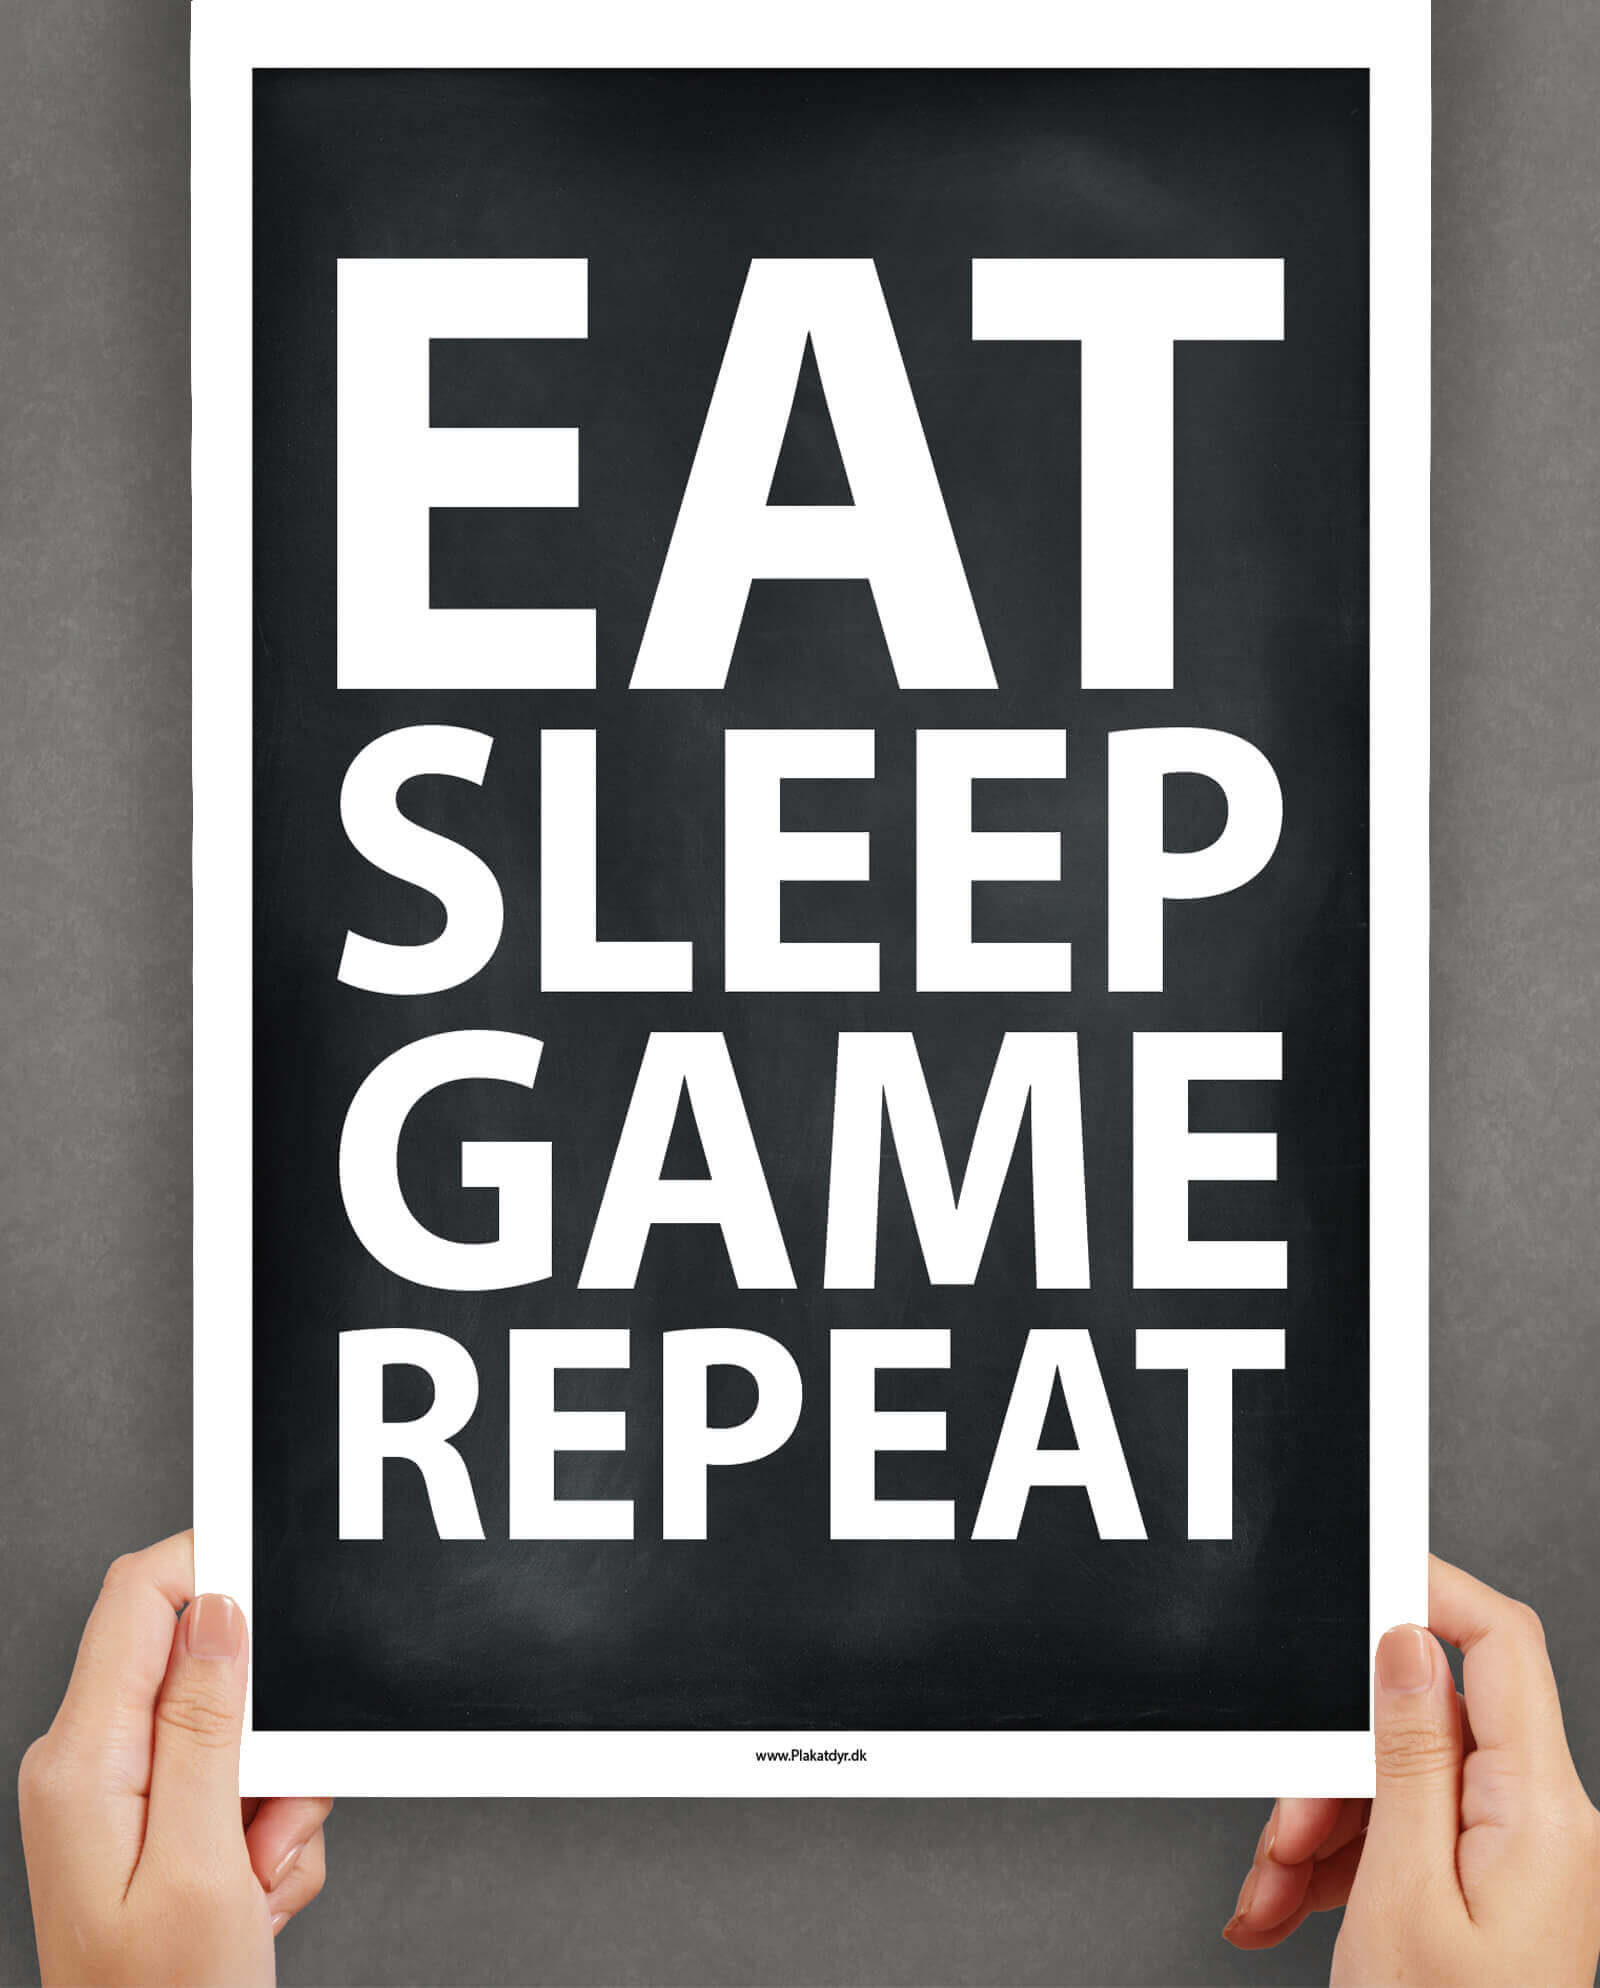 Eat-sleep-game-repeat-1